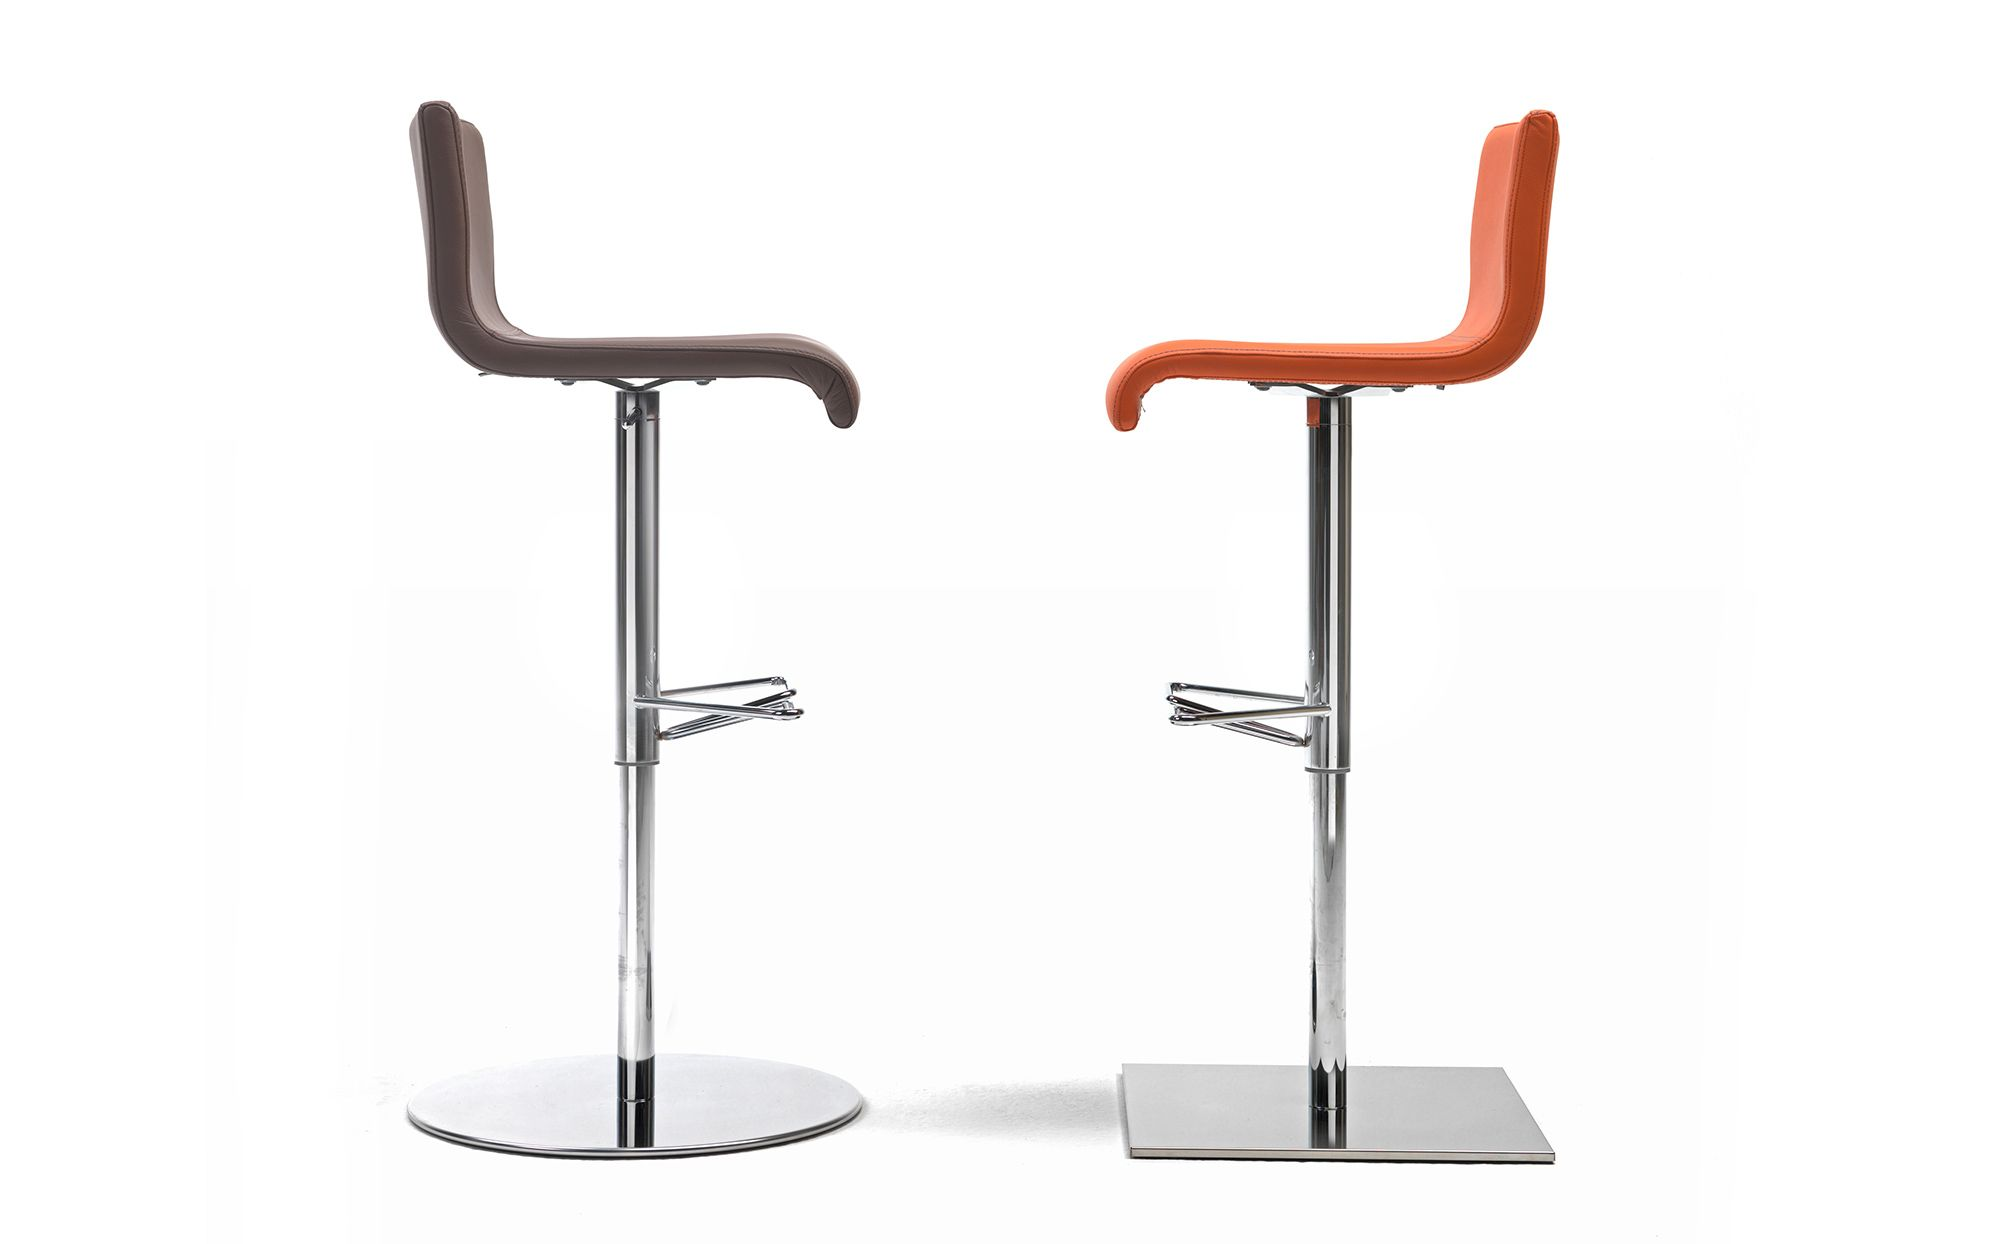 Marvelous Amba Barstools Are Always 100 Made In Italy Designer Pdpeps Interior Chair Design Pdpepsorg